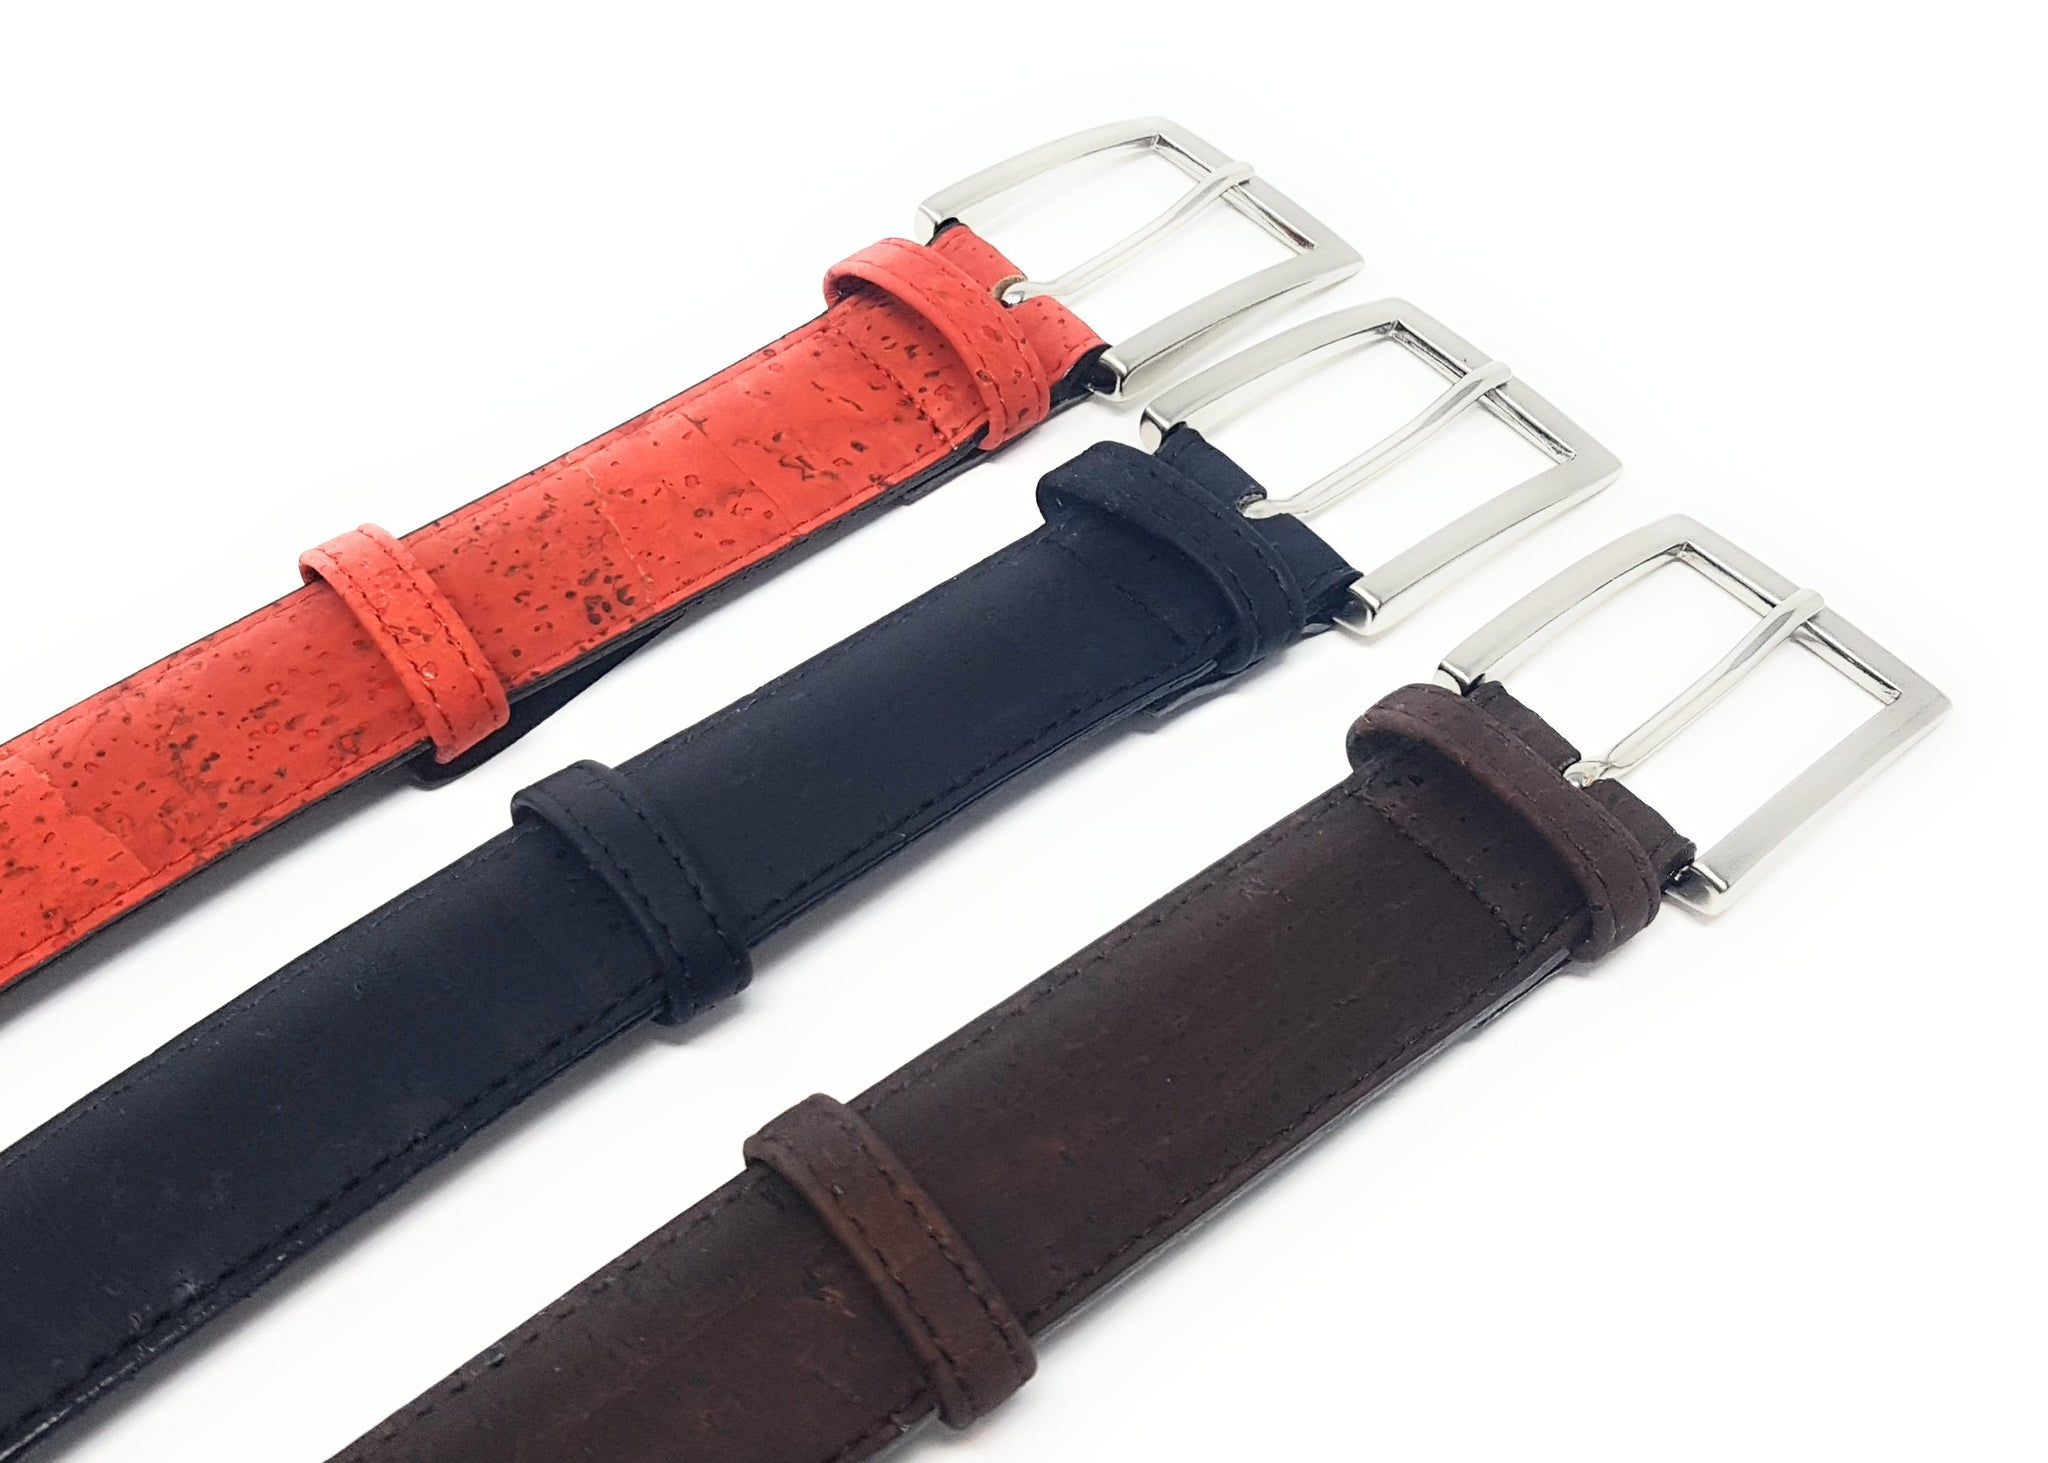 Why Choosing a Vegan Belt Made of Cork?